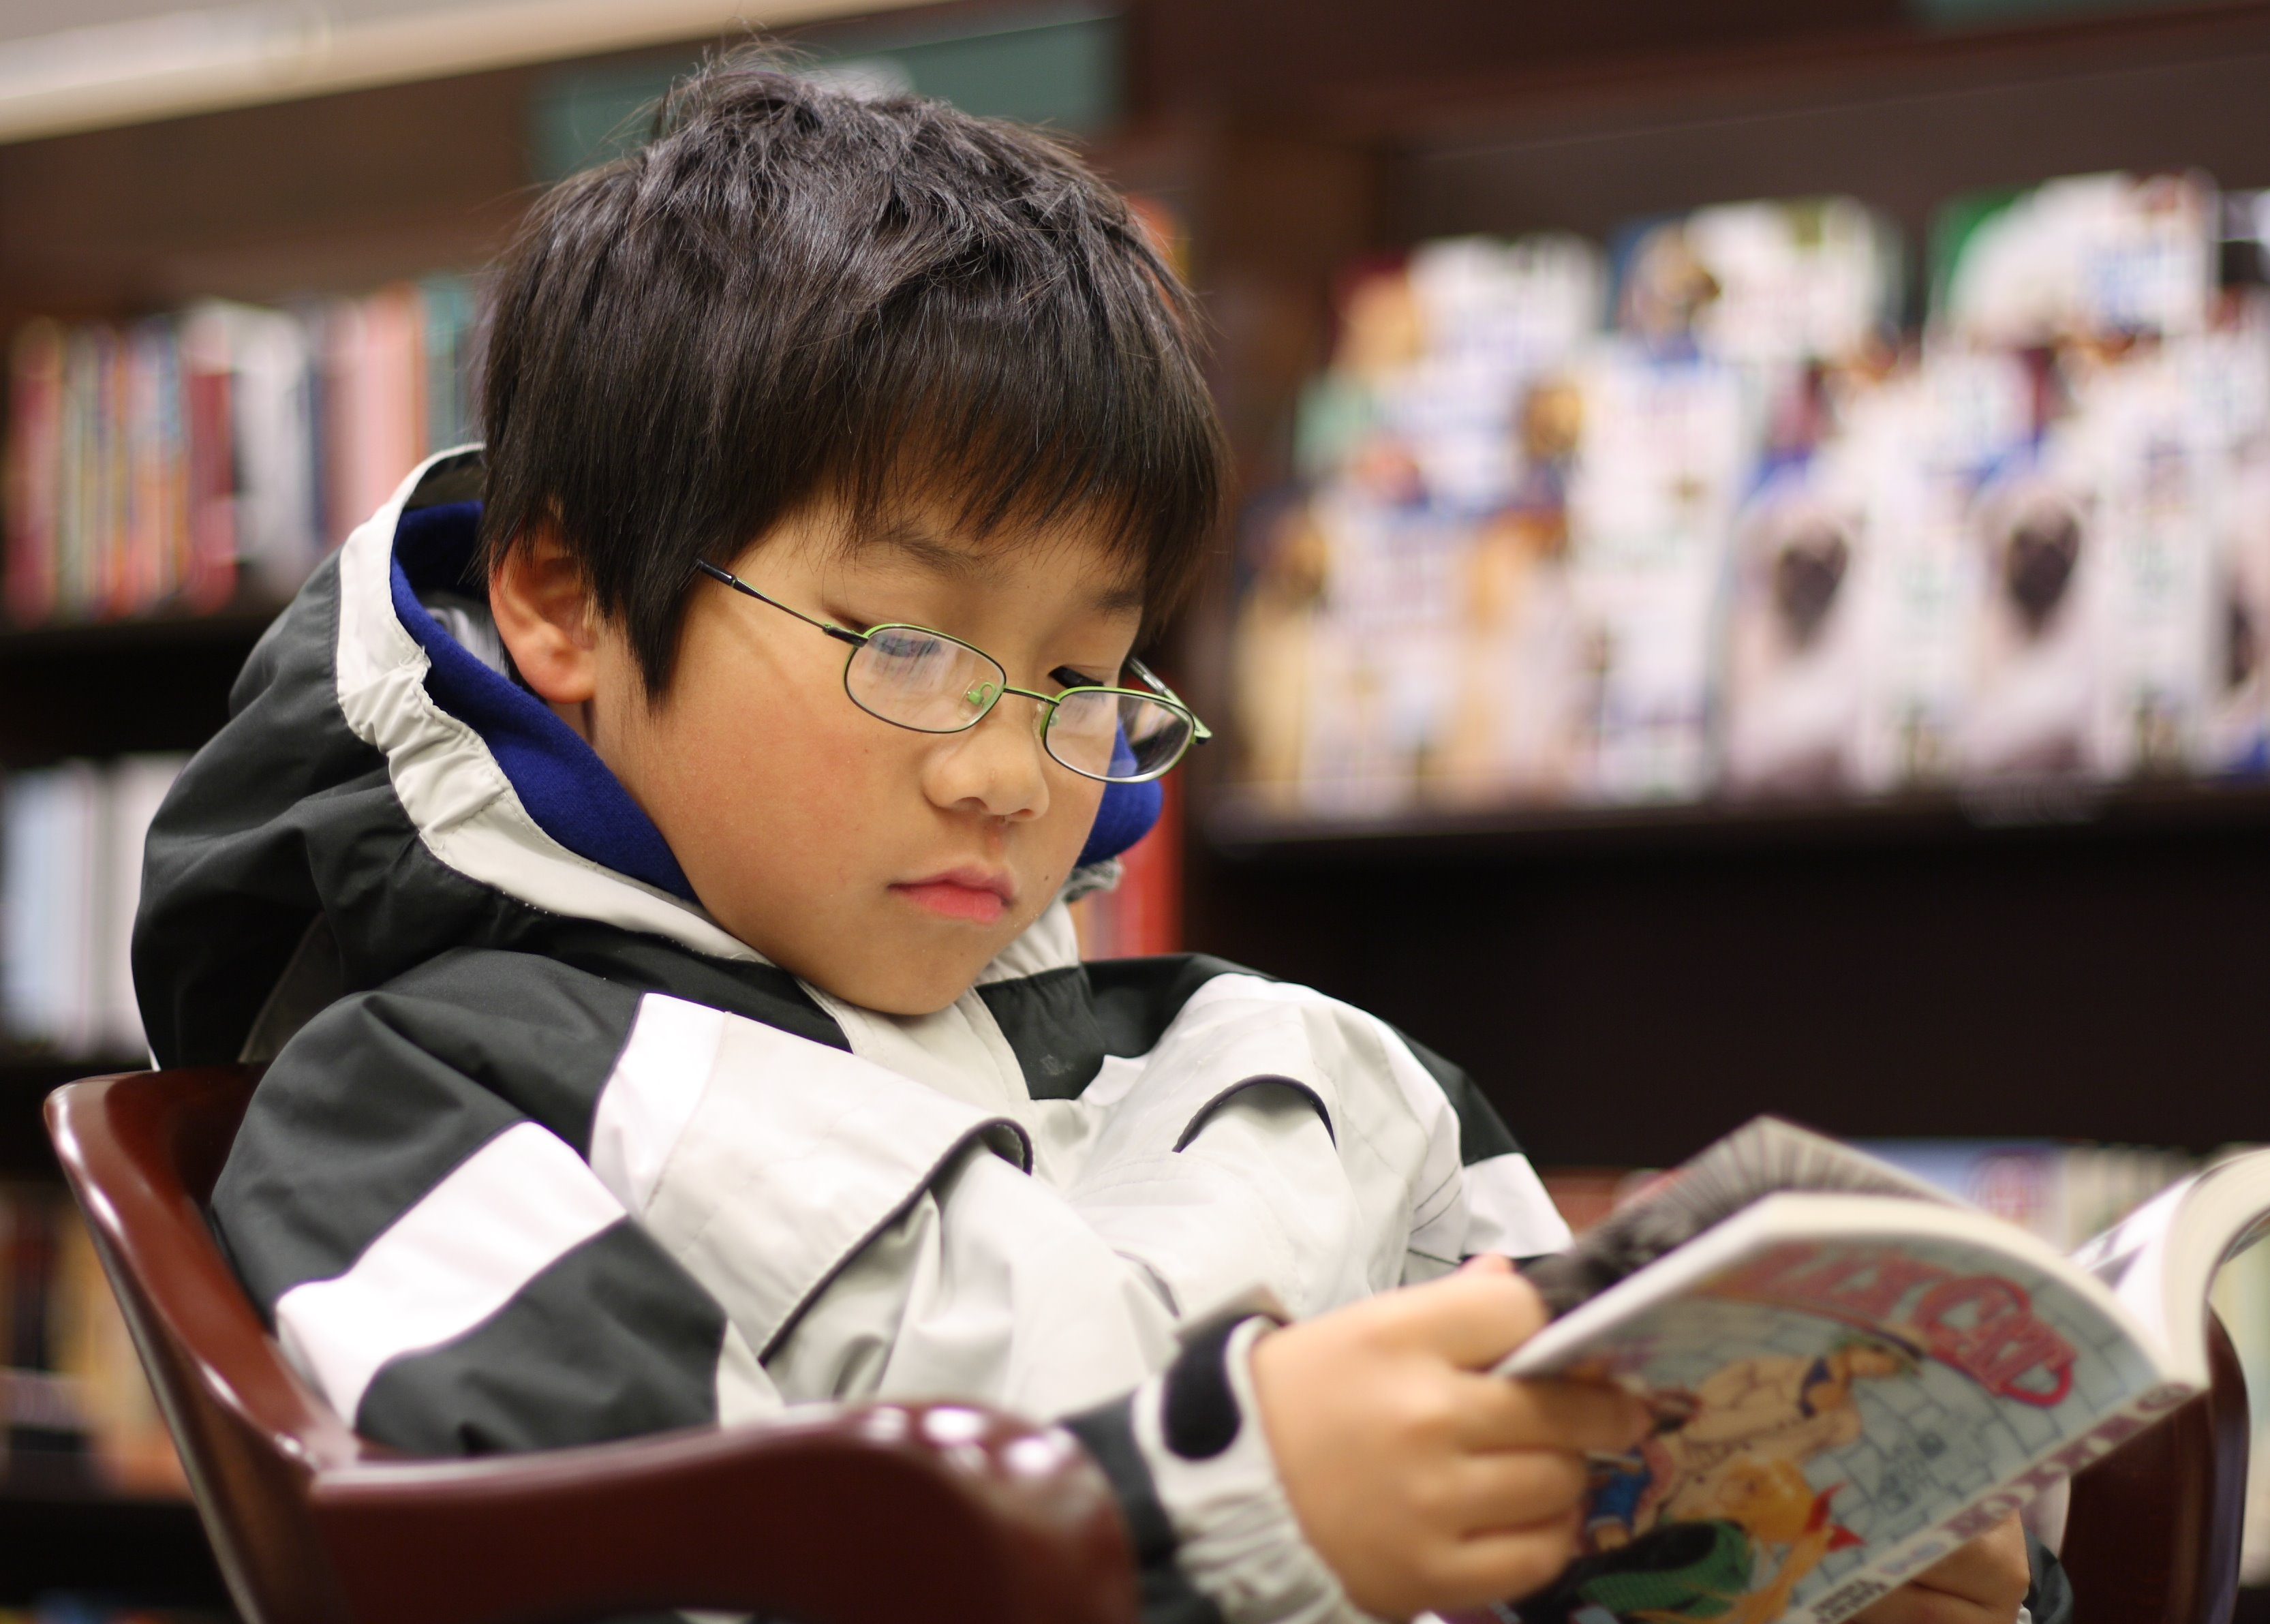 Description Young boy reading manga.jpg